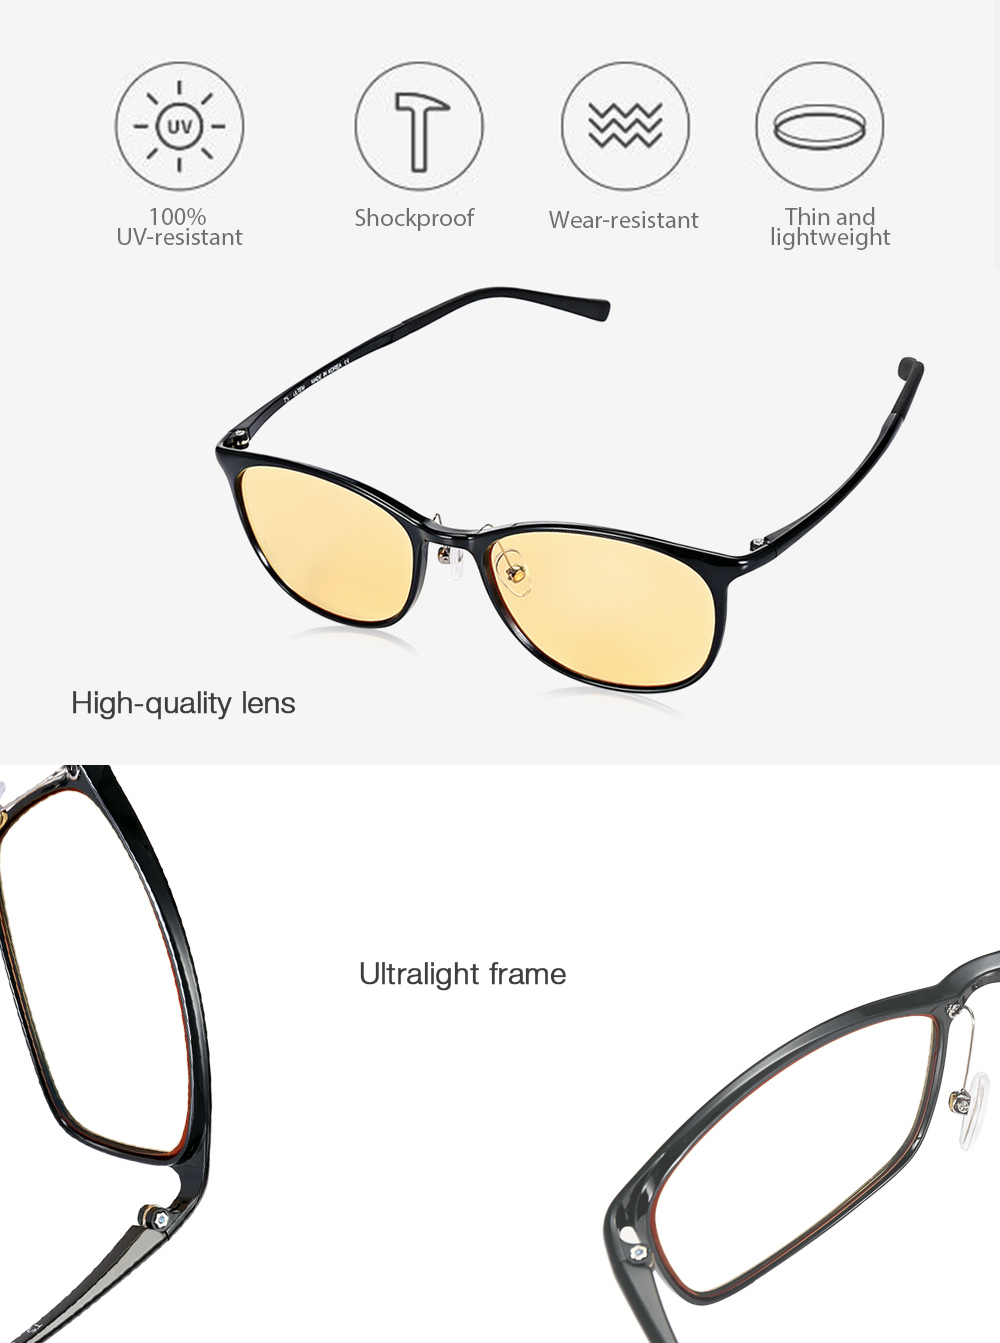 Xiaomi TS Ultralight Anti-blue-rays UV-resistant Protective Glasses  Computer Eyewear - d4c18f238c6